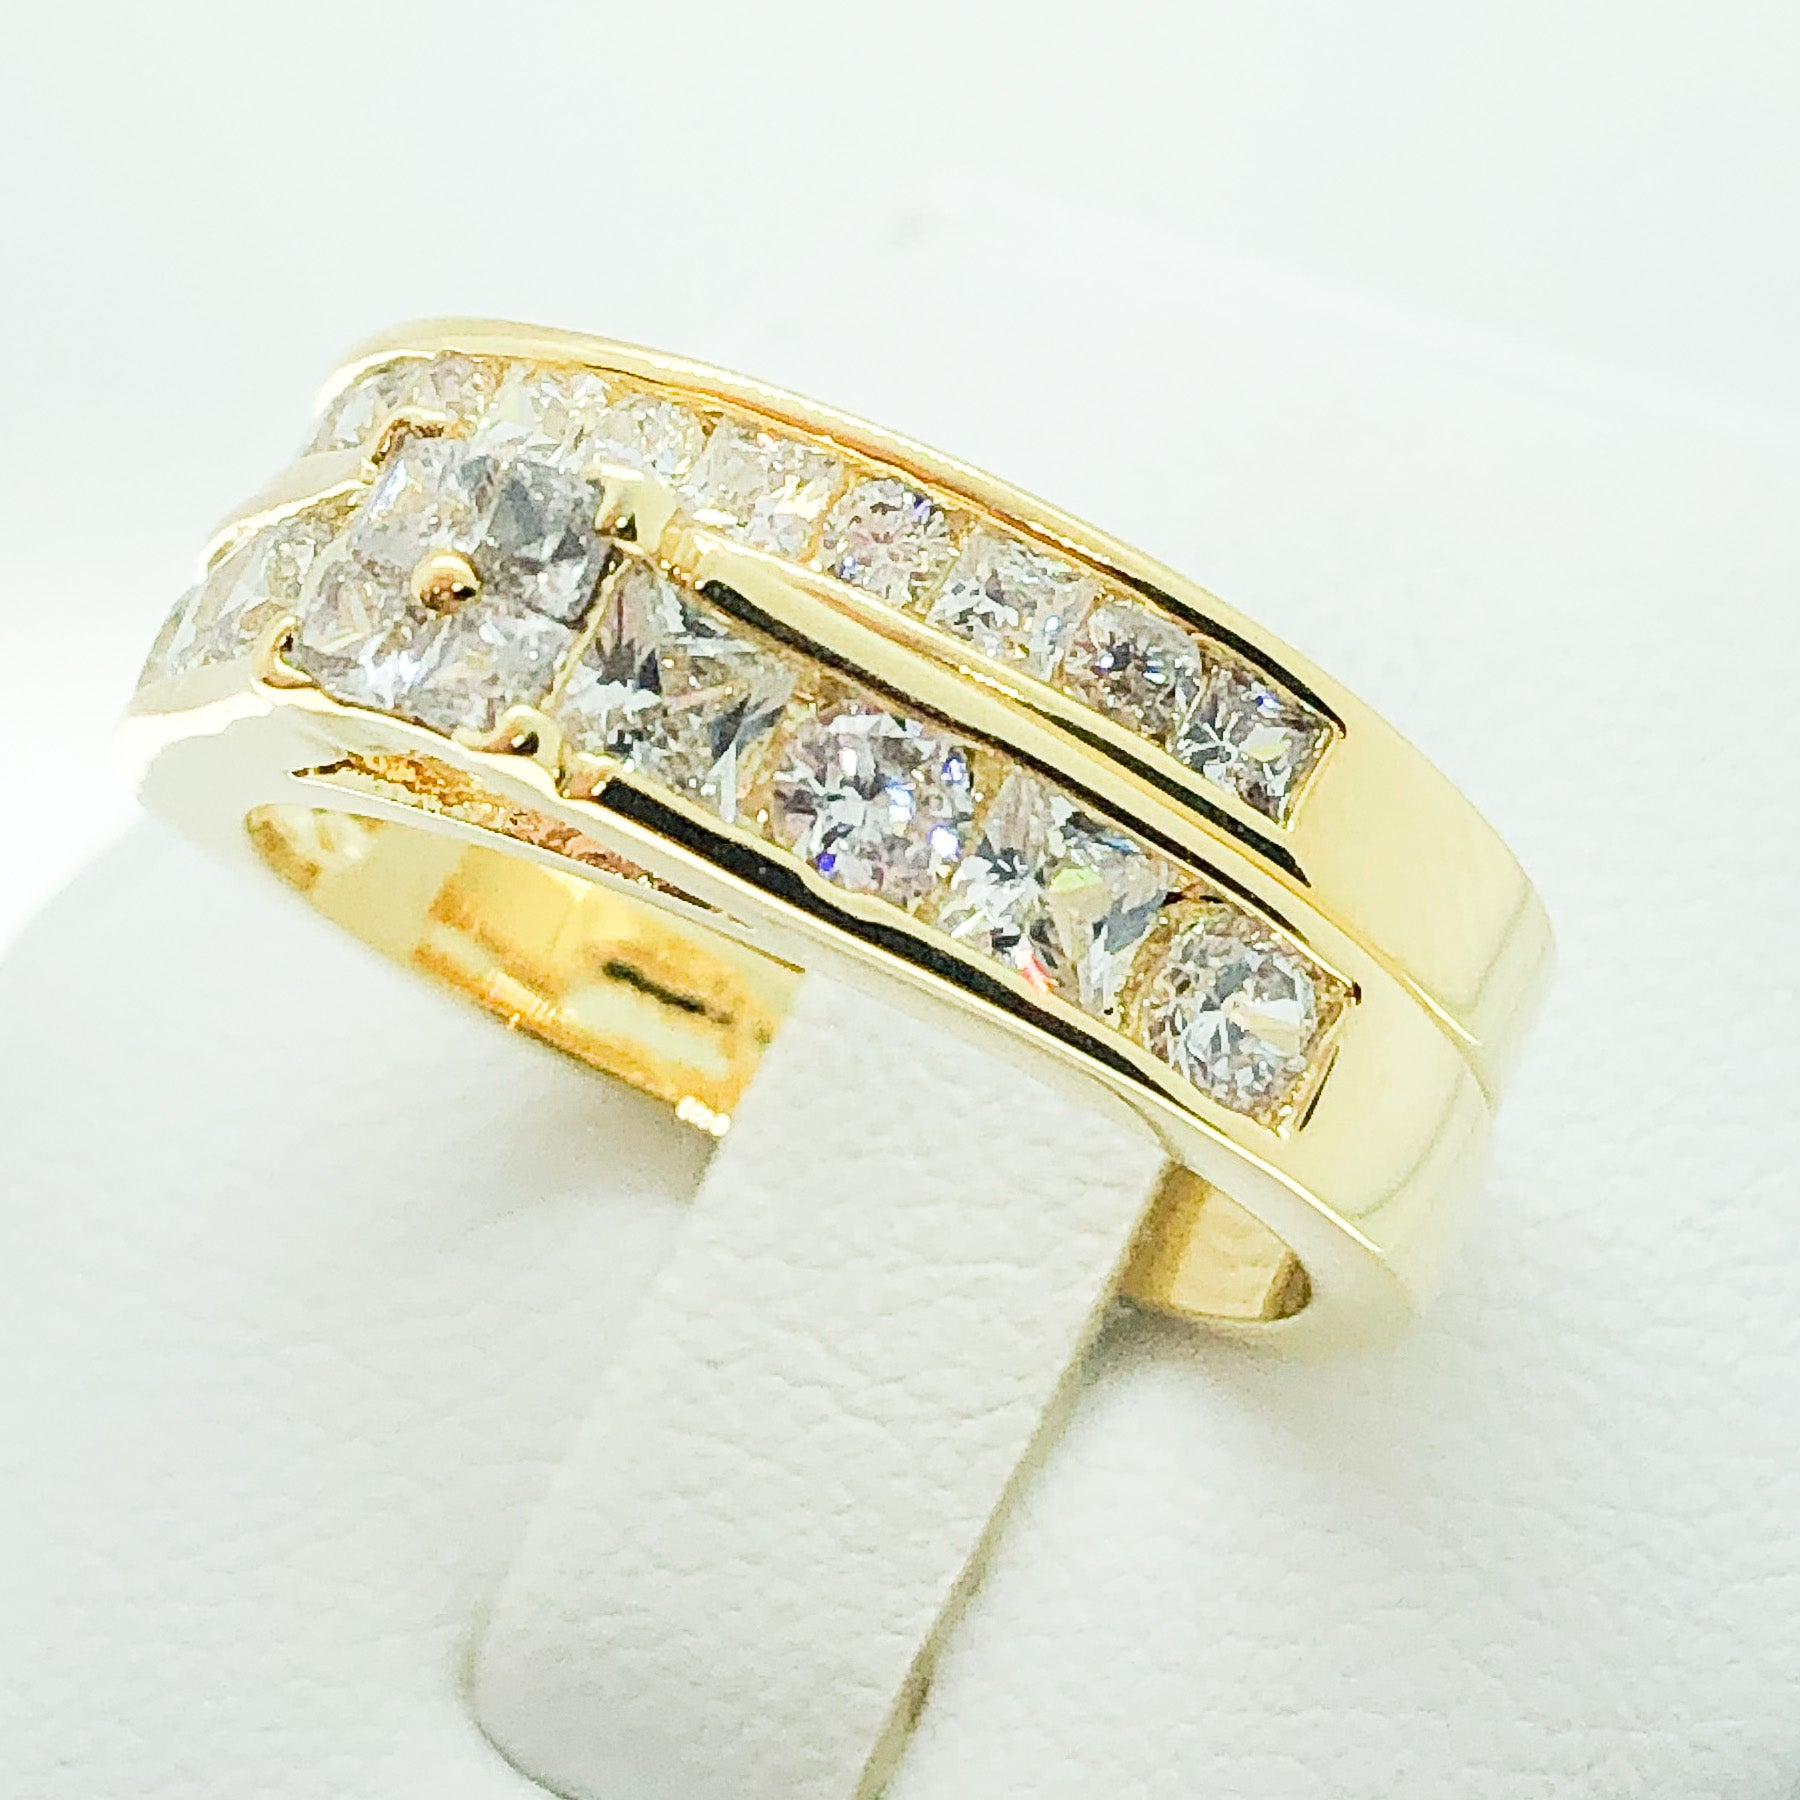 ID:R4019 Women Jewelry 18K Yellow Gold GF Vintage Engagement Wedding Bridal Diamonique Band 2pcs/Set Ring